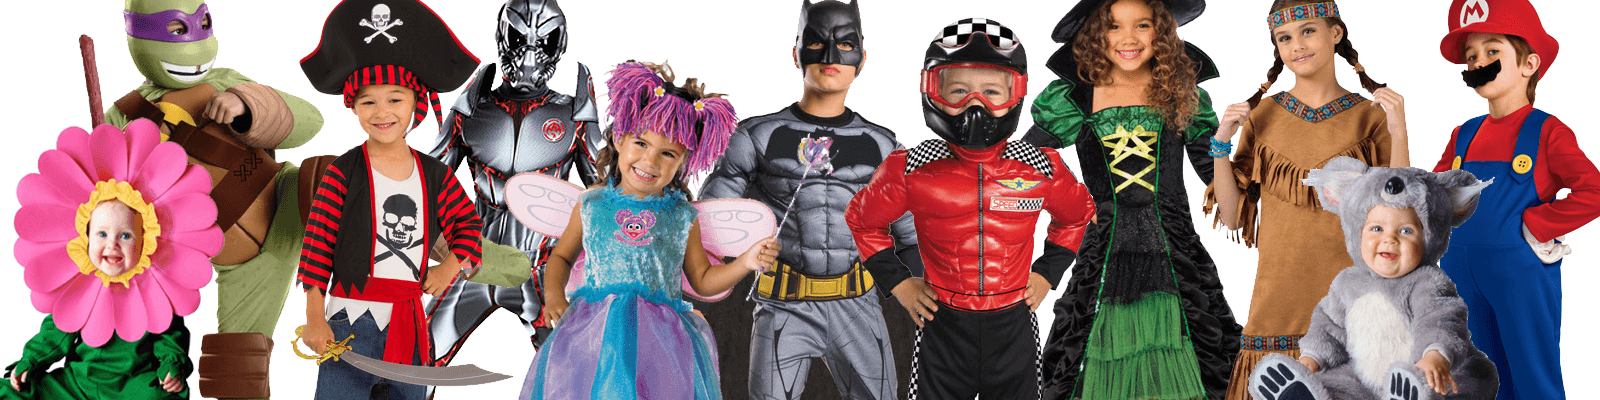 a0c2dcfdd58 Halloween Costumes for Kids are Here! Popular Kids Costumes and ...